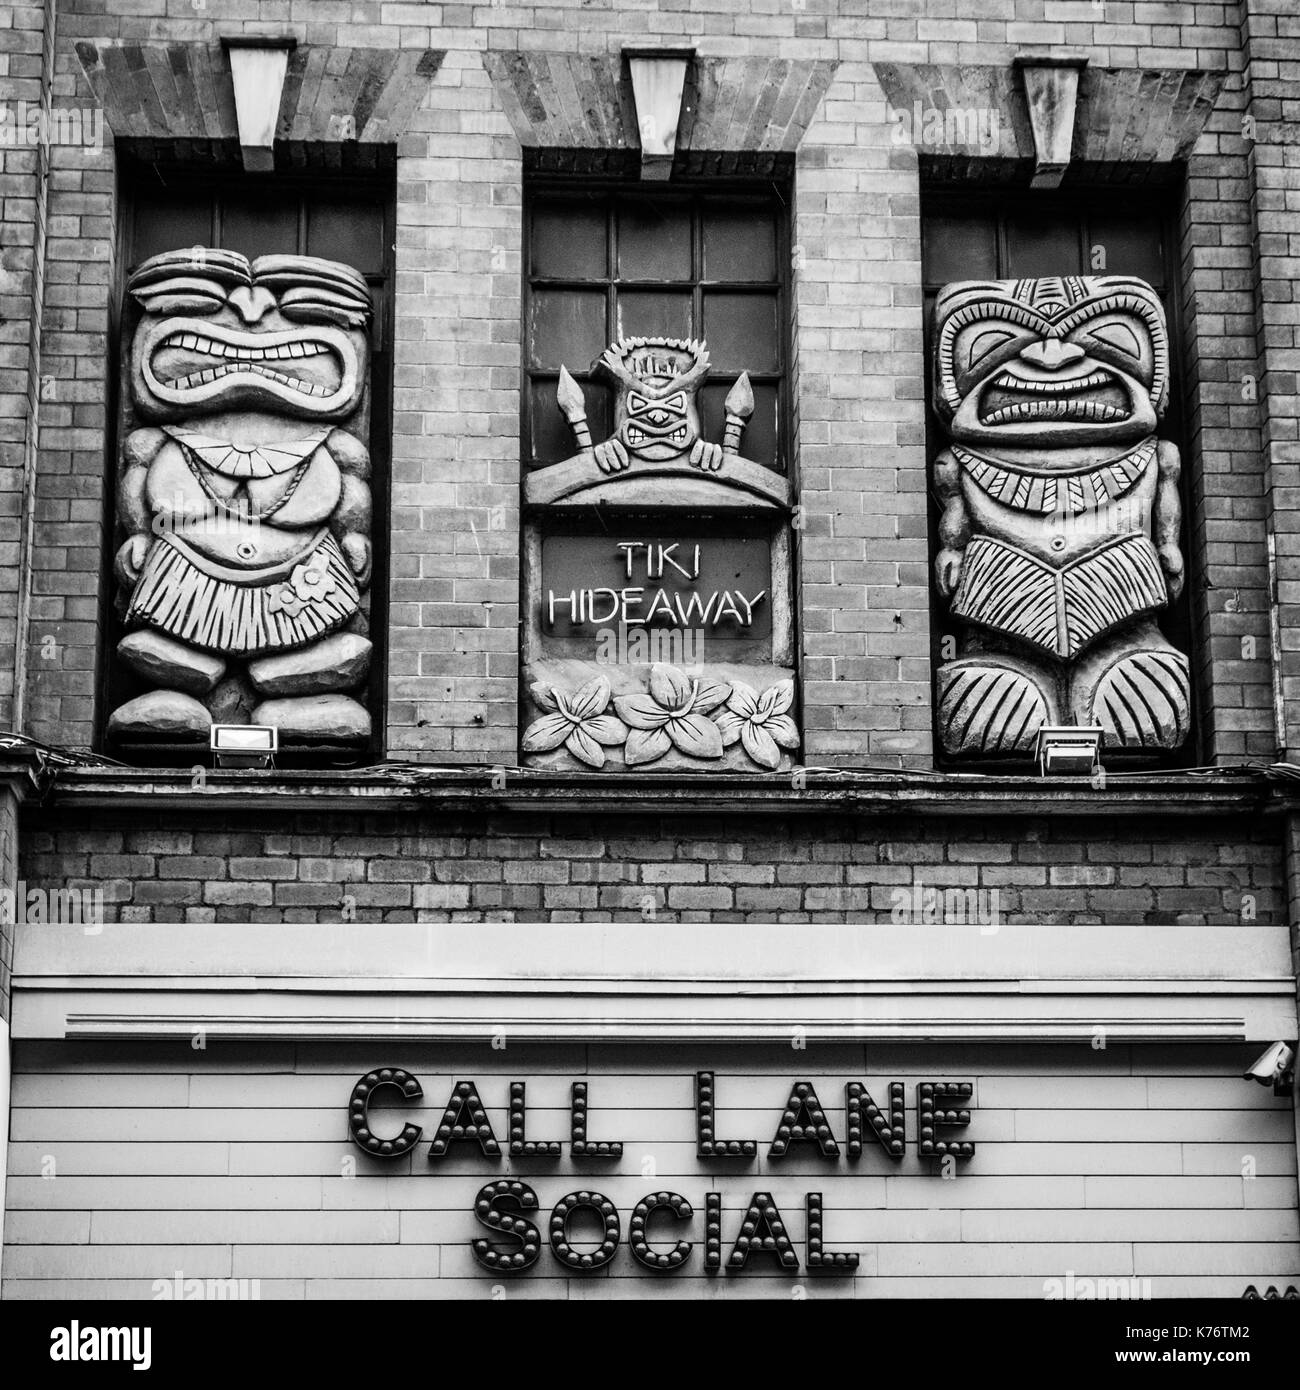 Call Lane Social, a bar on Call Lane, Leeds, West Yorkshire. - Stock Image